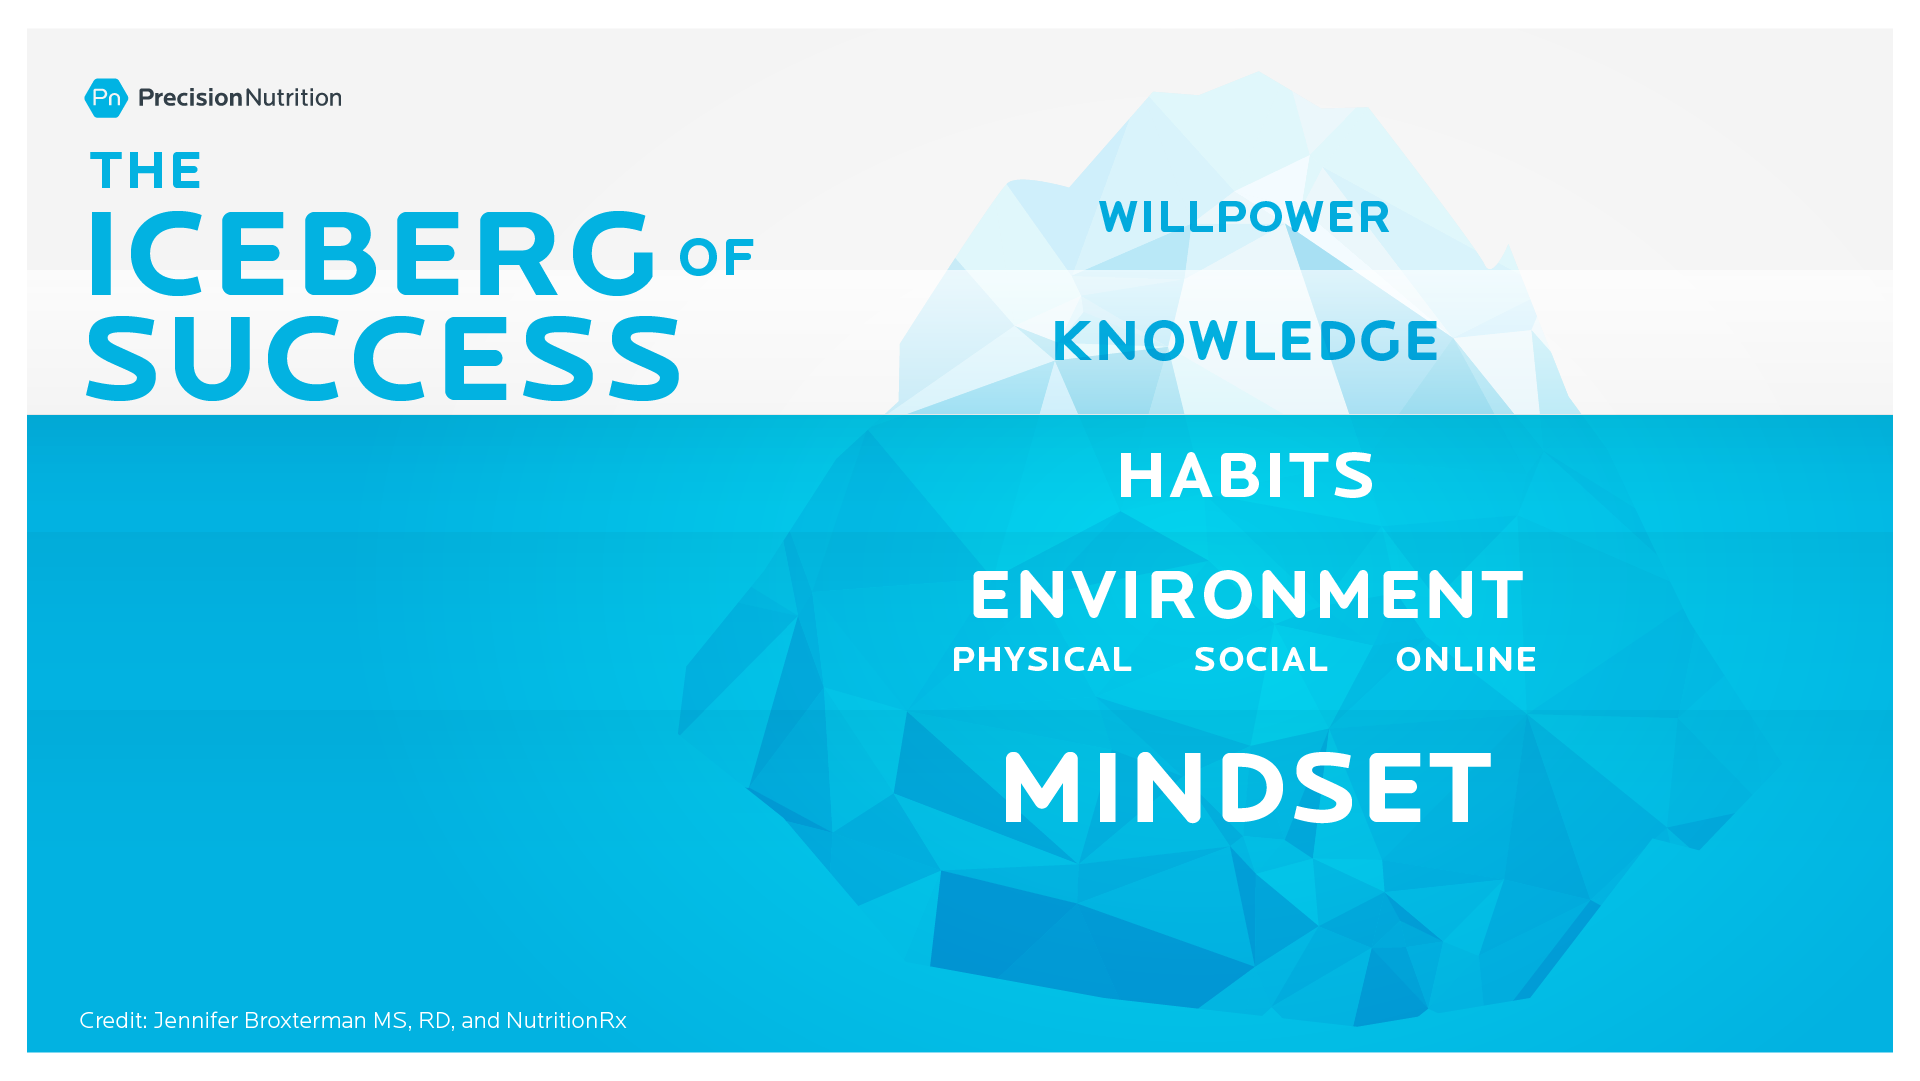 An illustration of the iceberg of success. Mindset, environment, habits are below the water and knowledge and willpower are above the water.